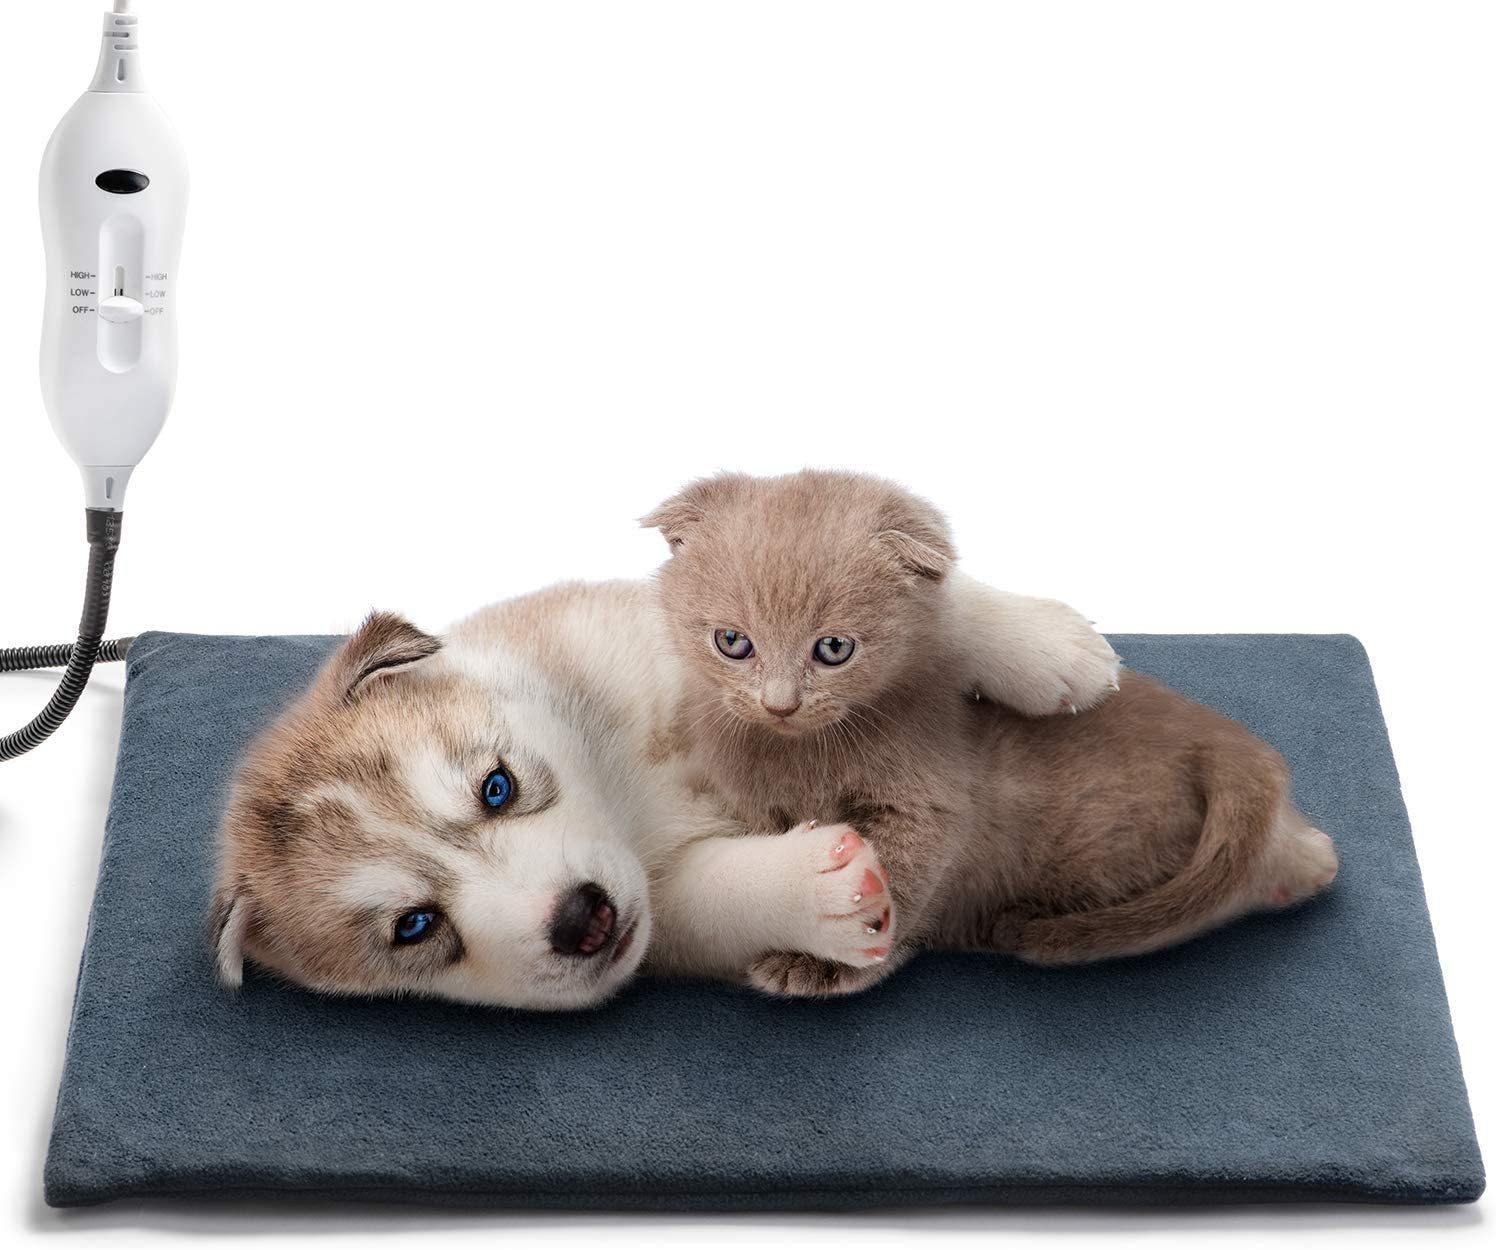 Boderrio Pet Heating Pad, Electric Heating Pad for Dogs and Cats Indoor Warming Mat with Auto Power Off